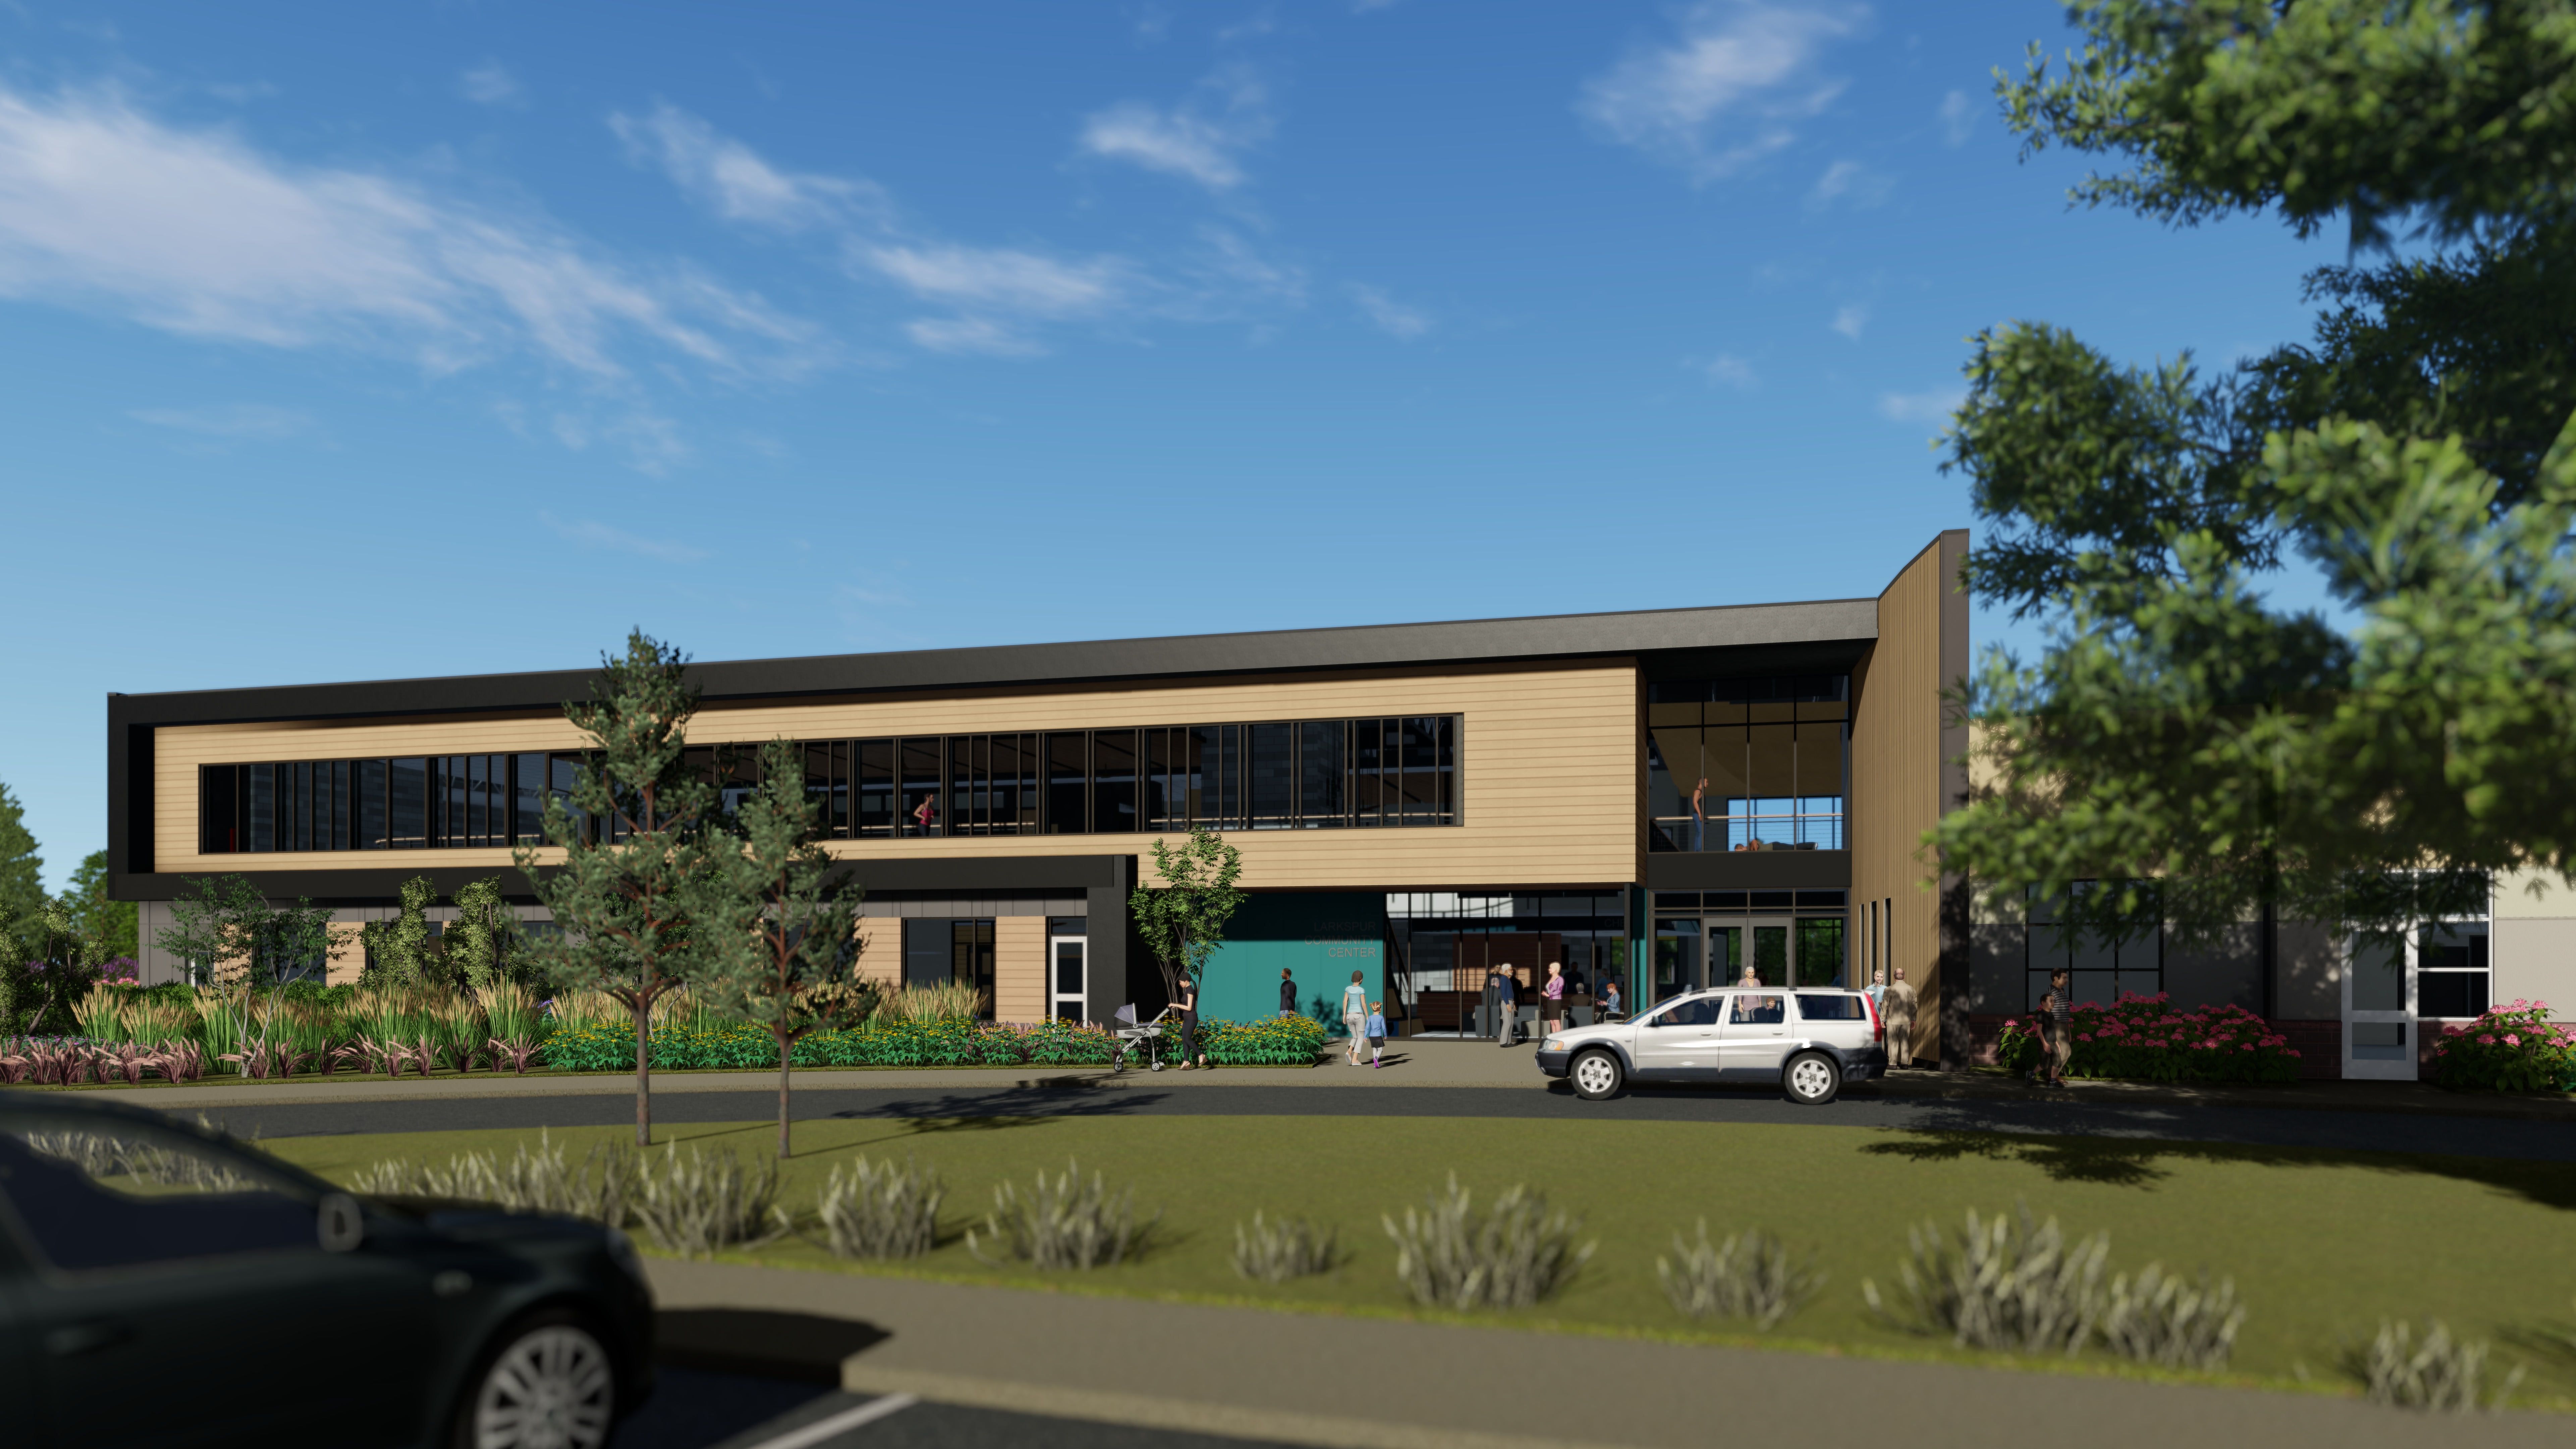 Image of the exterior of the Larkspur Community Center expansion of the Bend Senior Center.